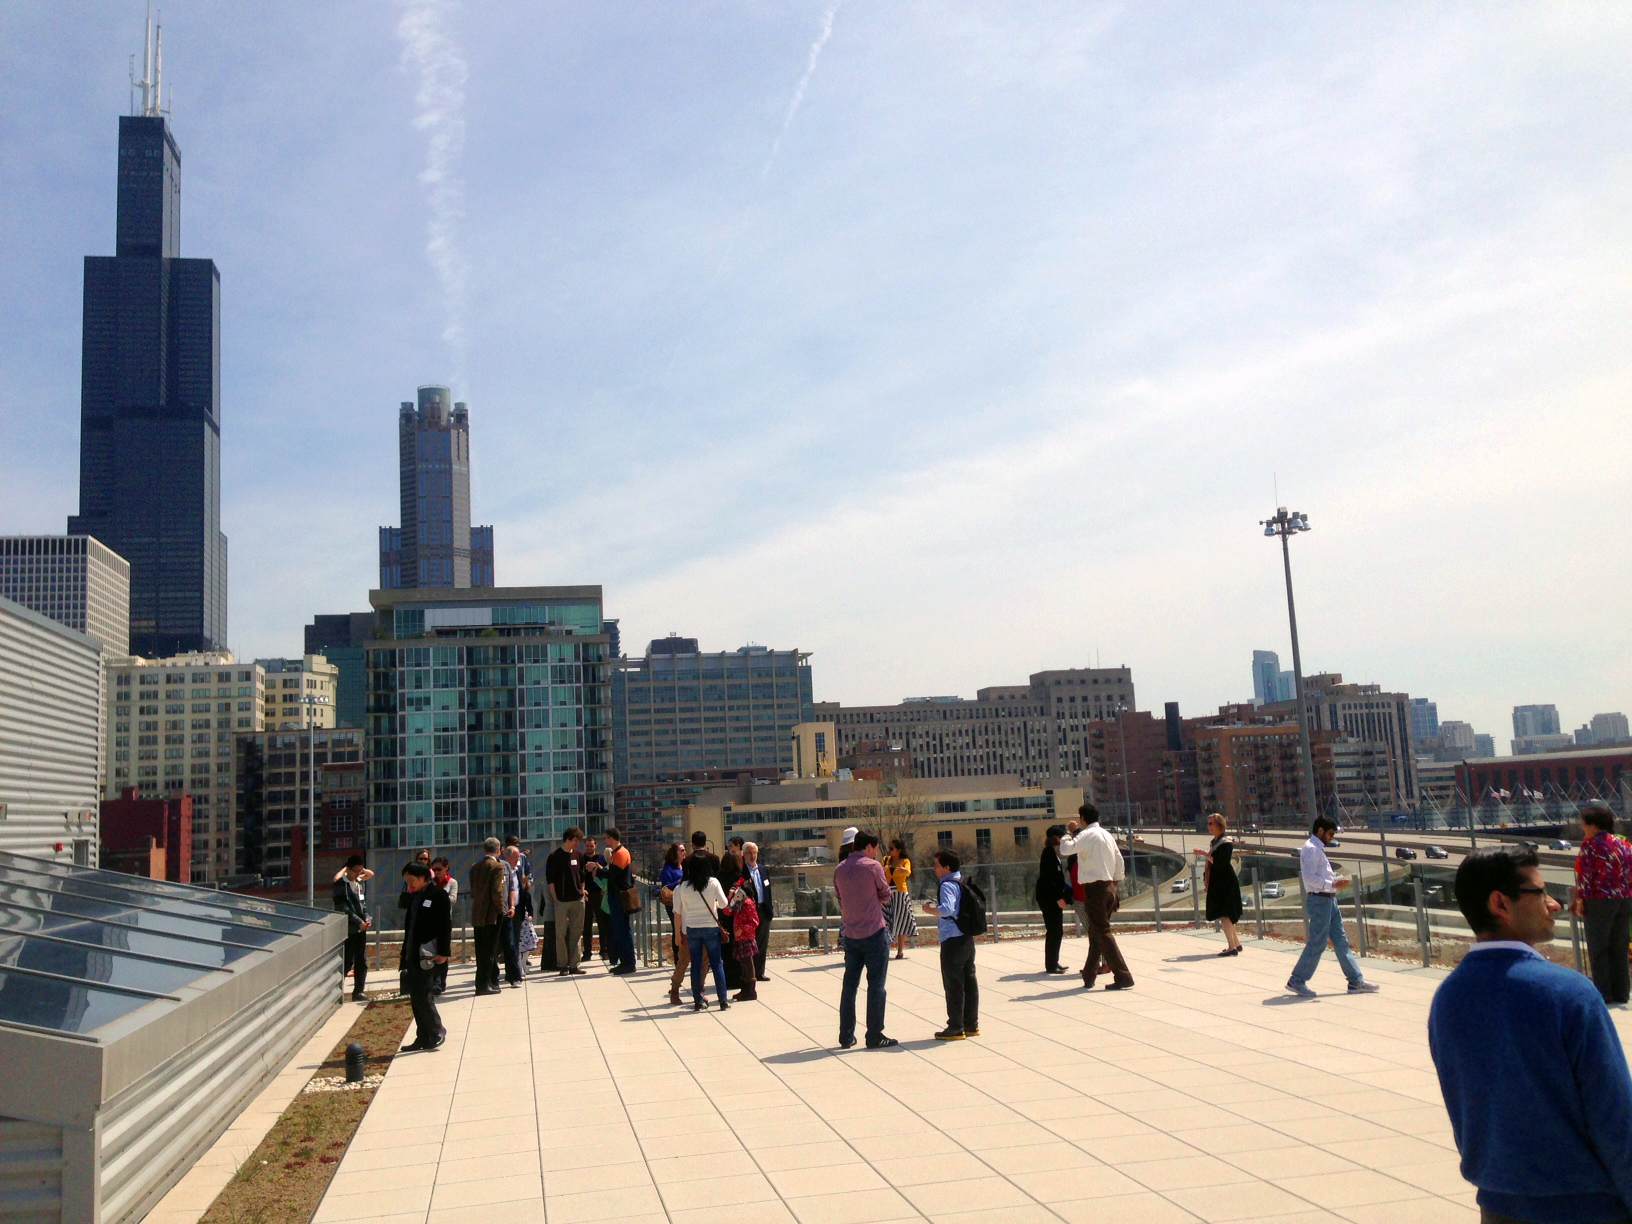 It was a beautiful spring day for the 2013 Fulbright student farewell.